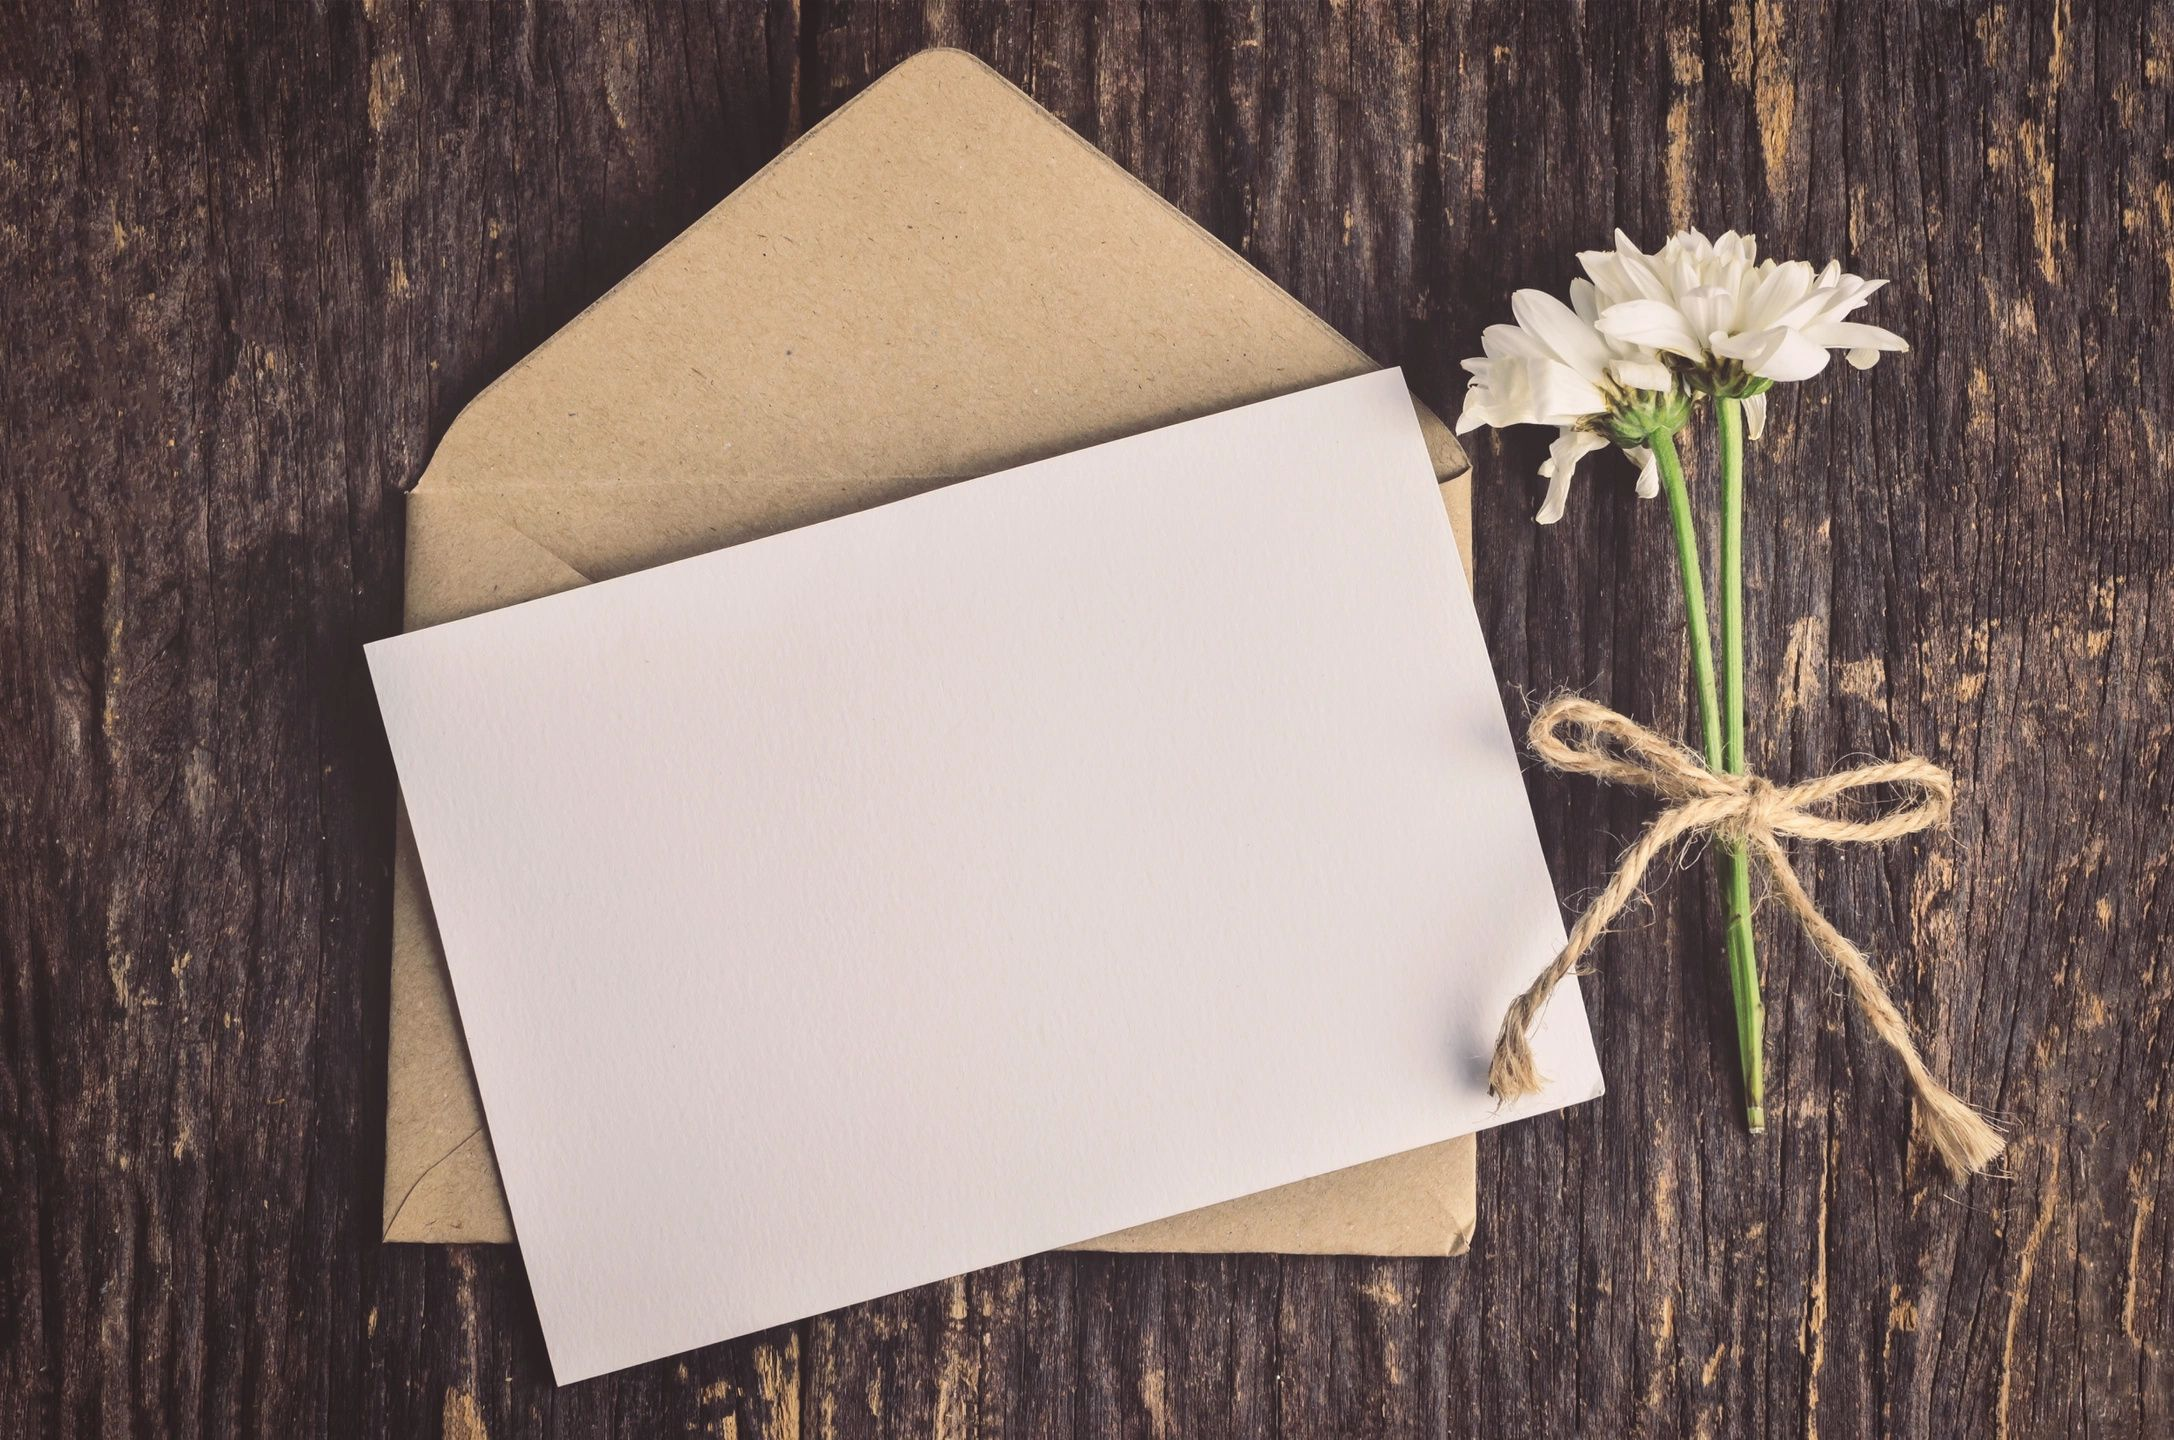 A Valentine's Day note and flowers for DC widow blog writer Marjorie Brimley